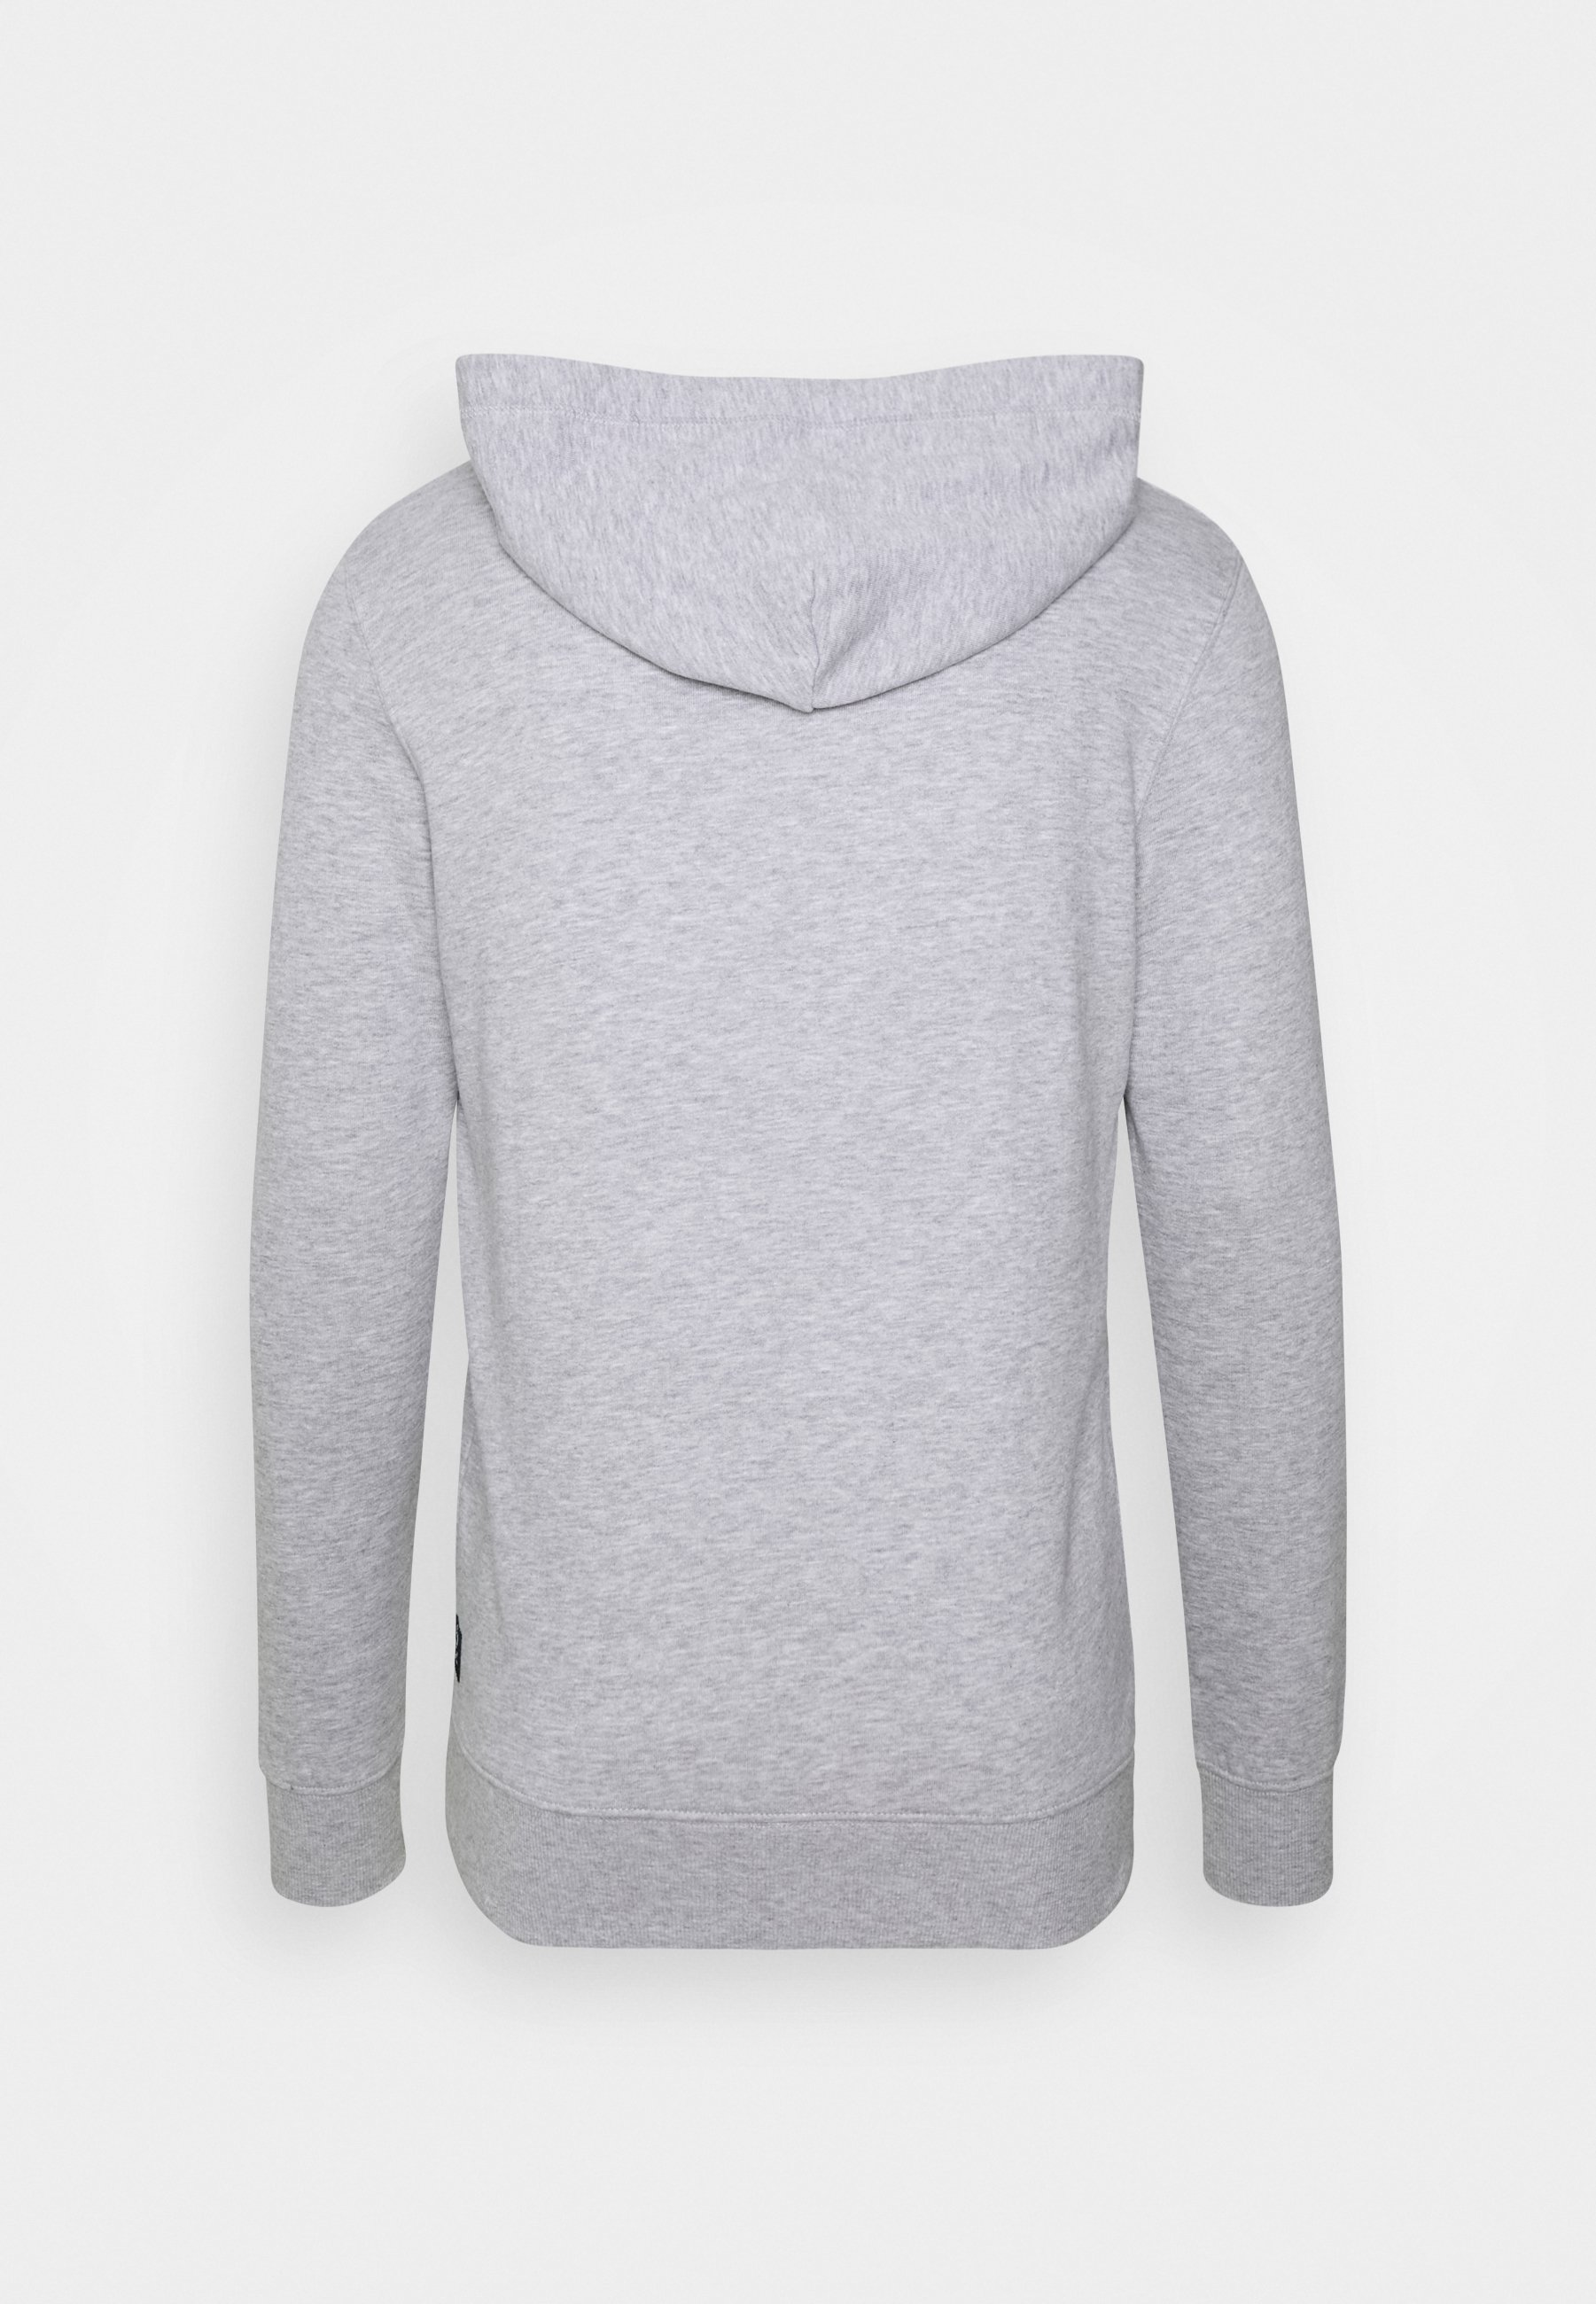 Tom Tailor Denim Hoody Chest Print - Hoodie Light Stone Grey/grå